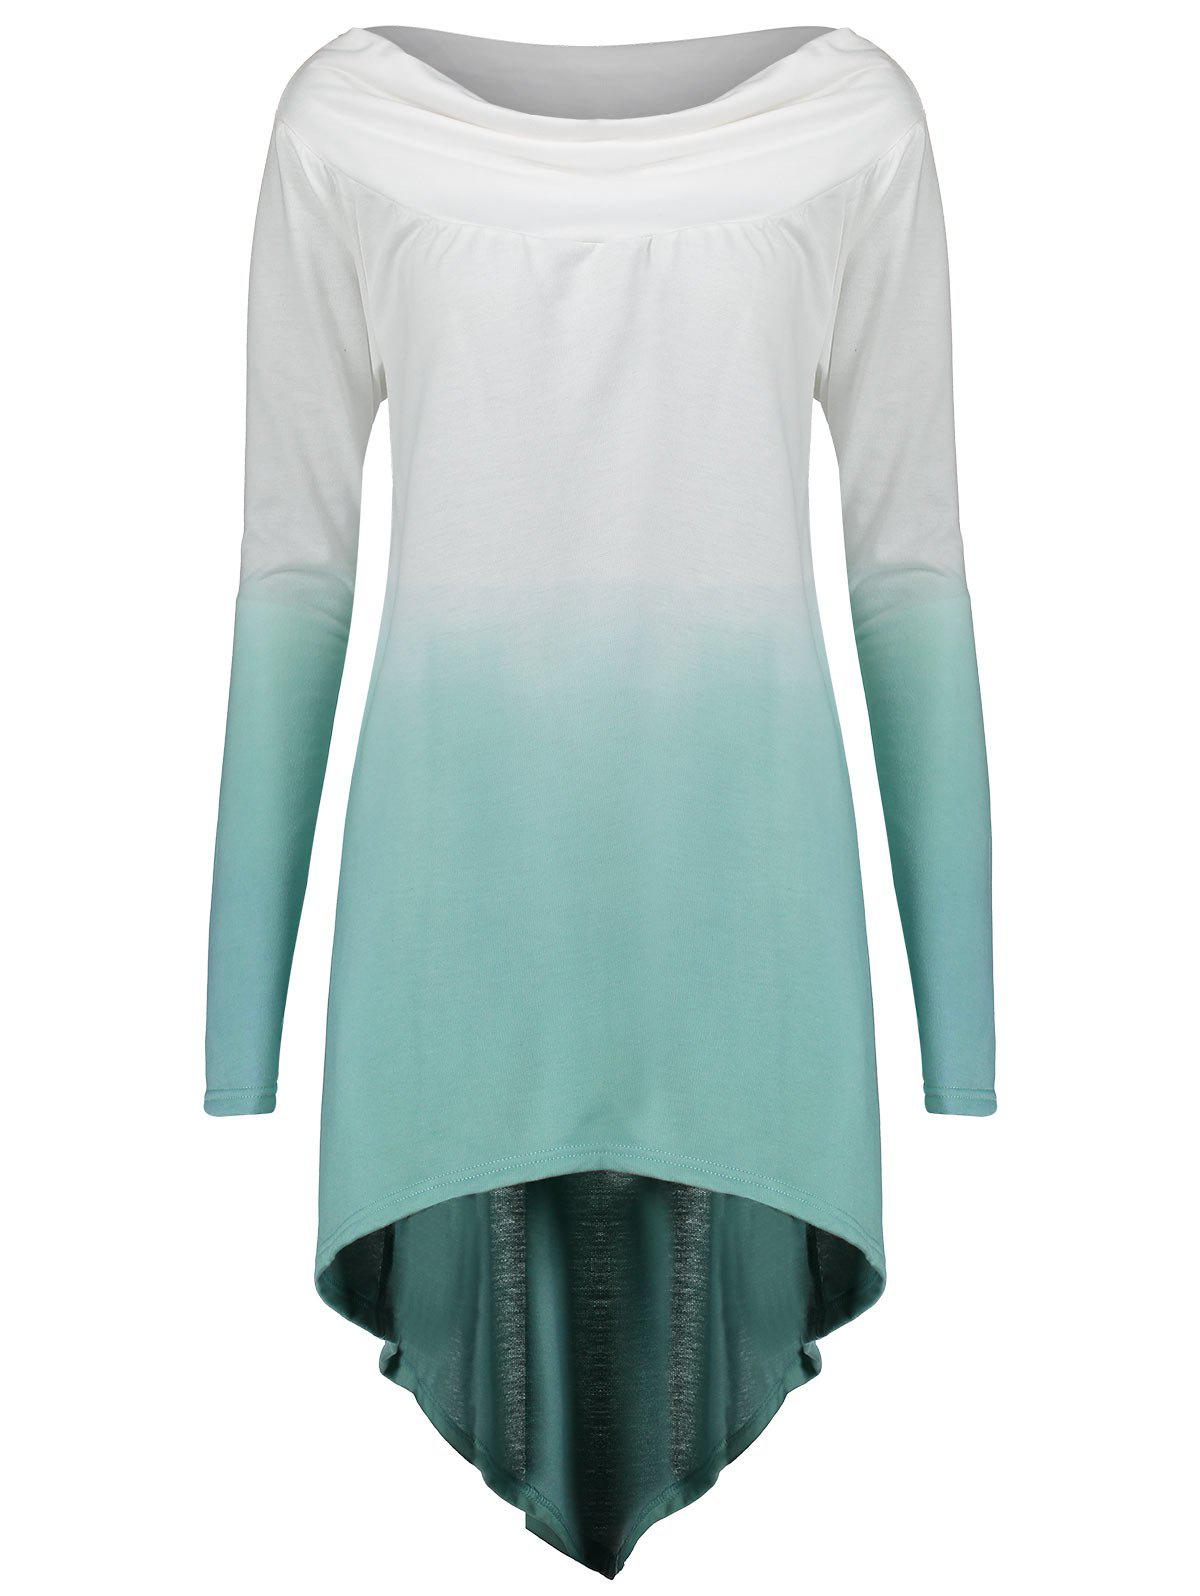 Ombre Print Plus Size High Low Sweatshirt - LAKE GREEN 3XL